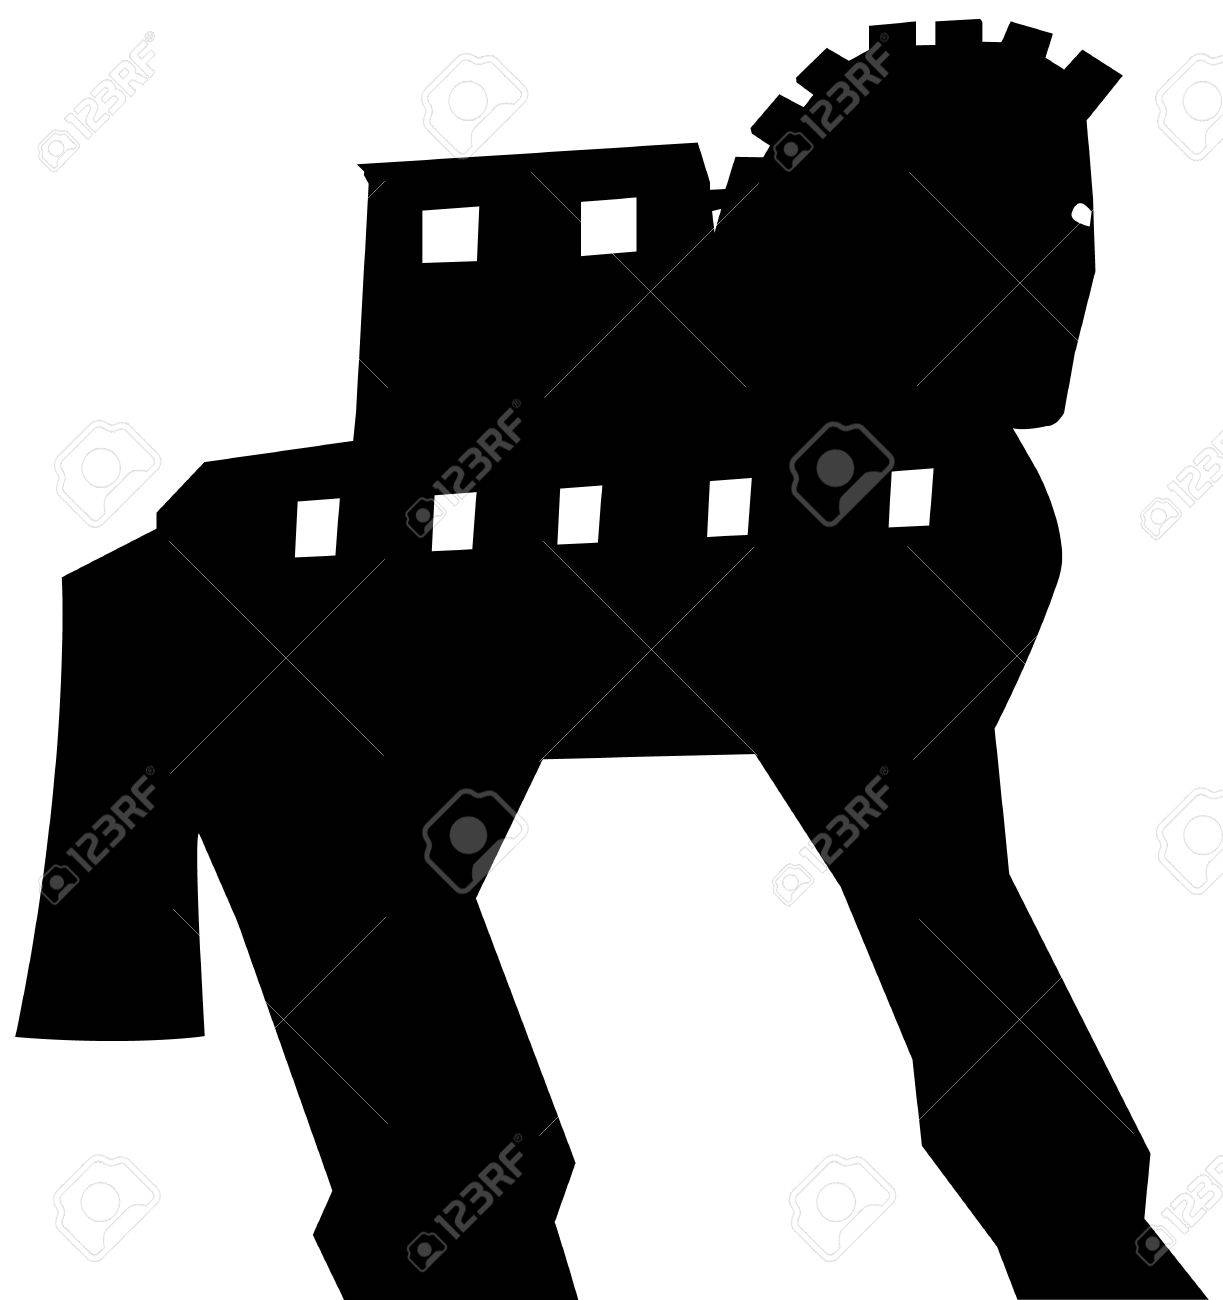 Trojan Horse Silhouette Vector Royalty Free Cliparts Vectors And Stock Illustration Image 25249495